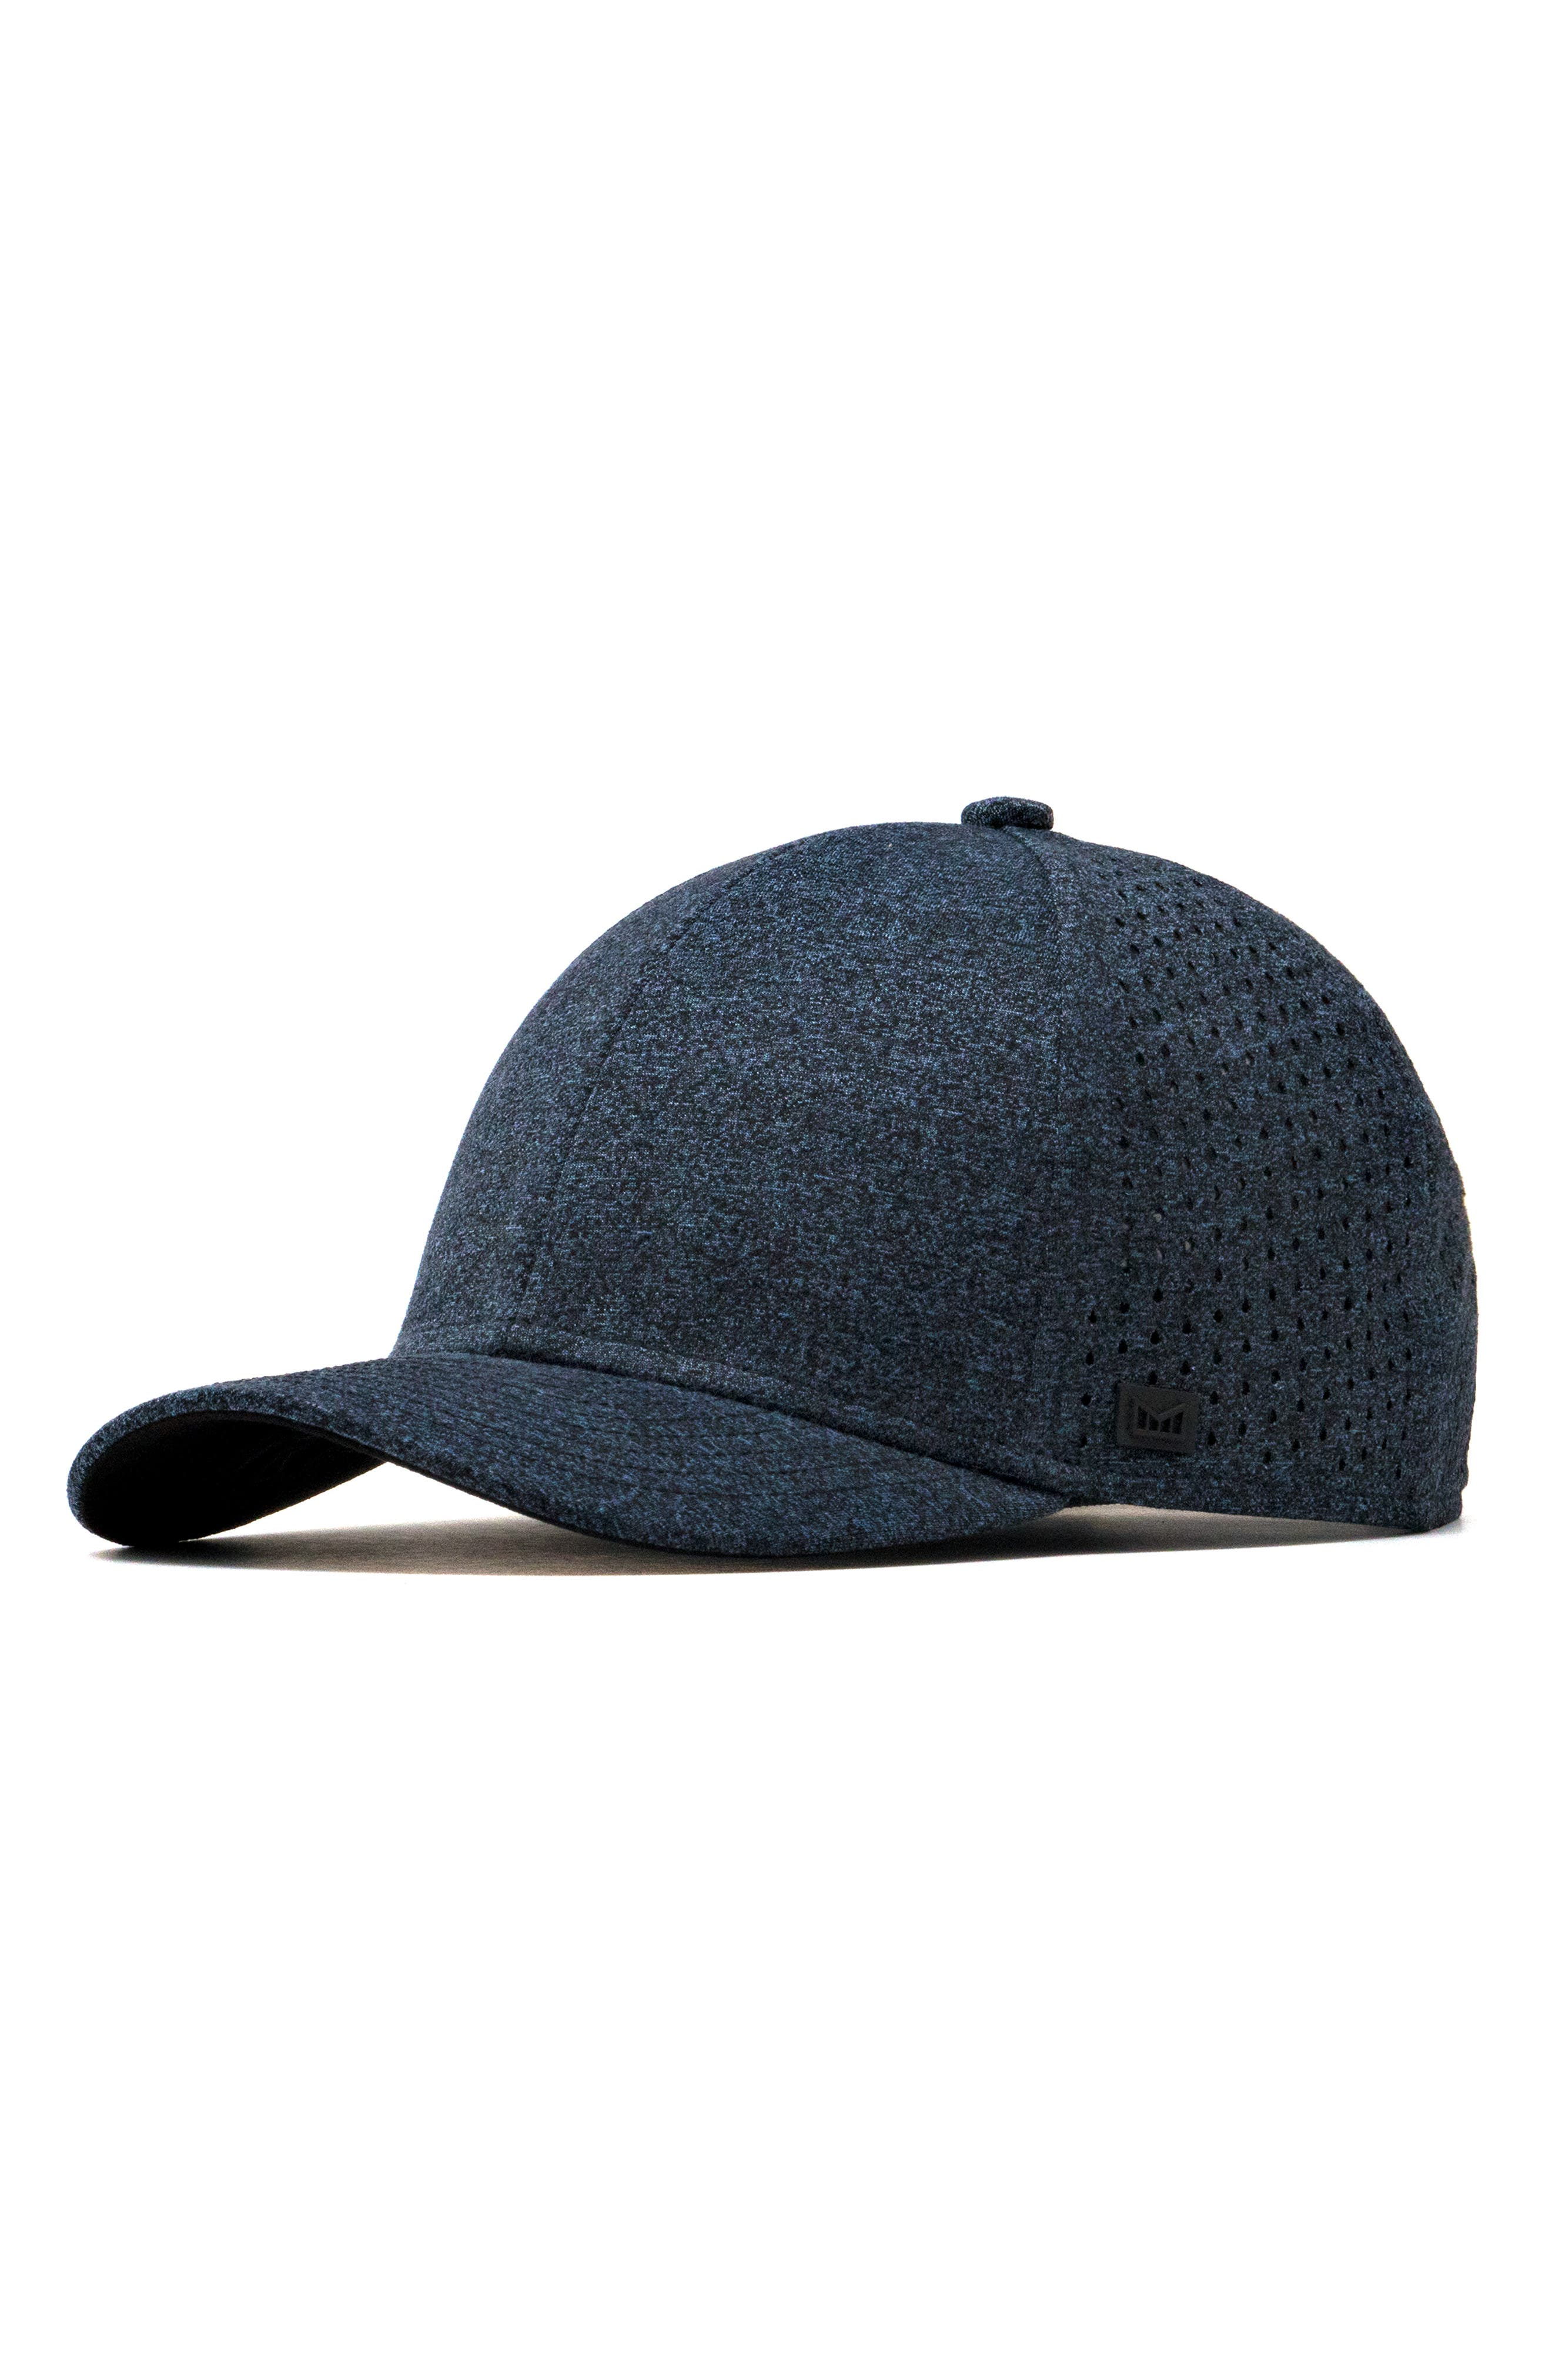 MELIN The A-Game Ball Cap - Blue in Heather Blue